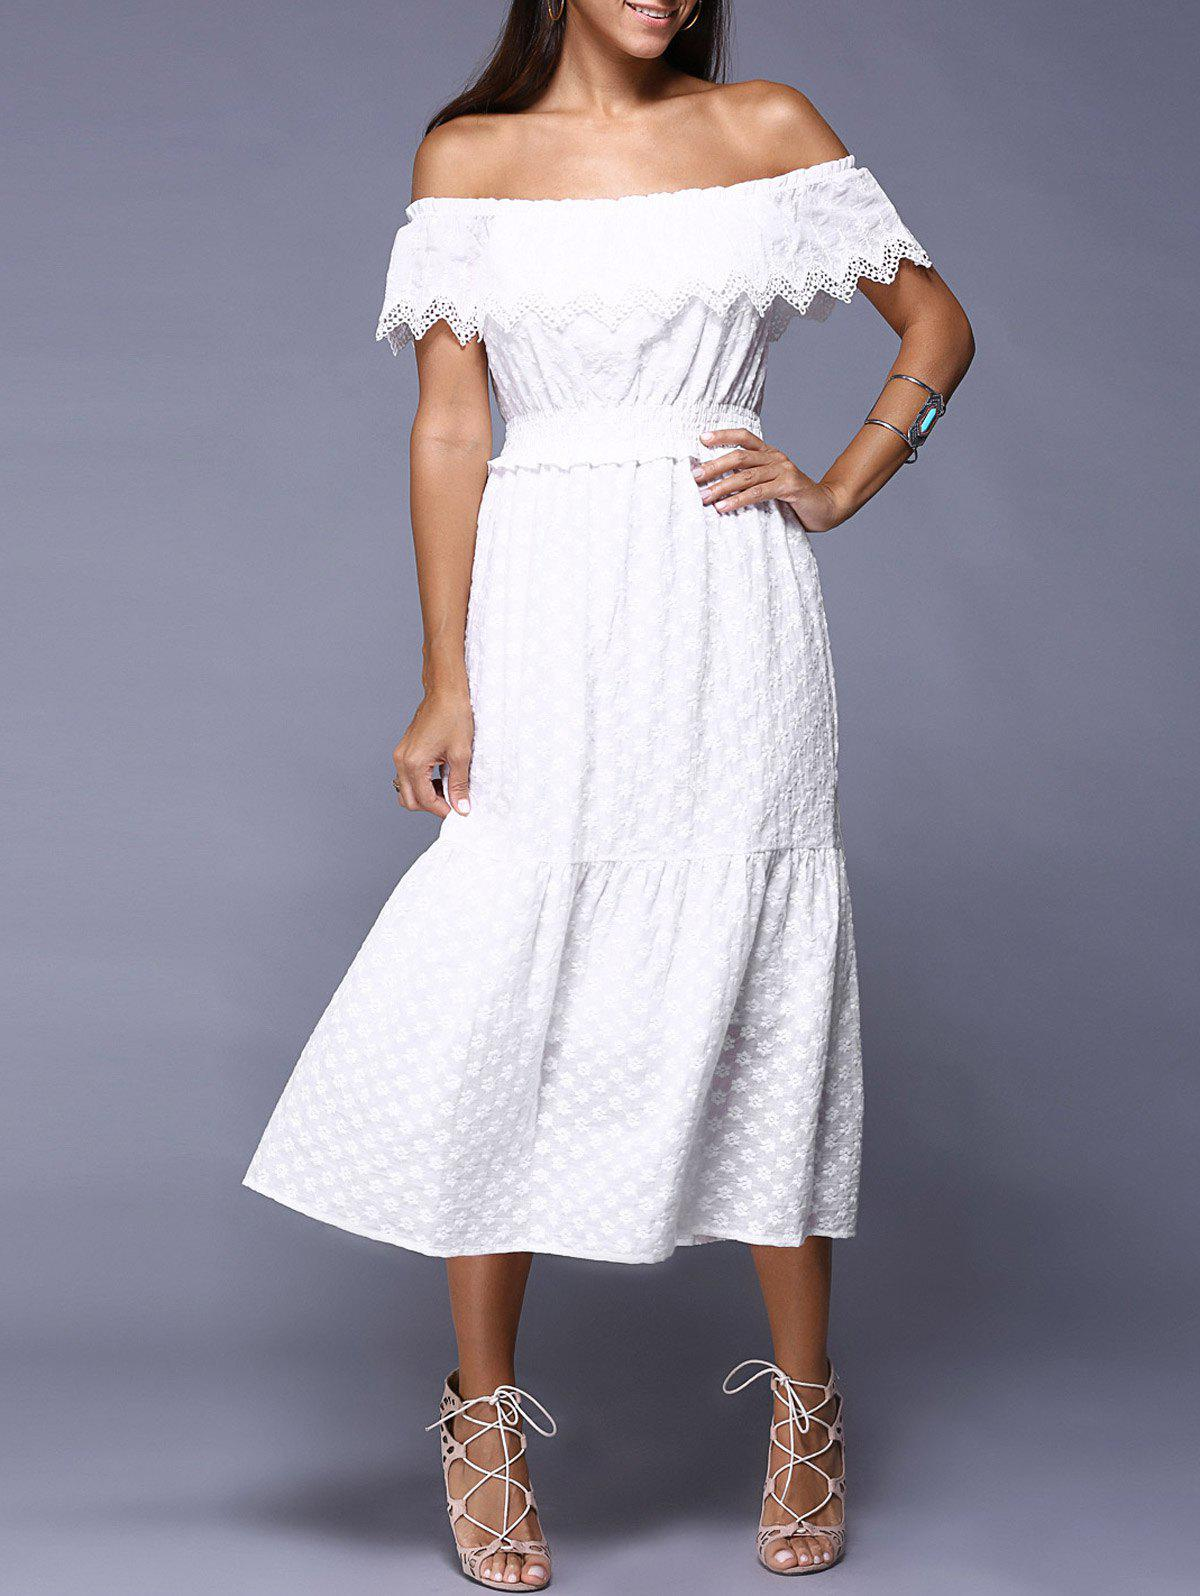 Sweet Off-The-Shoulder Overlay Jacquard Dress For Women - ONE SIZE WHITE